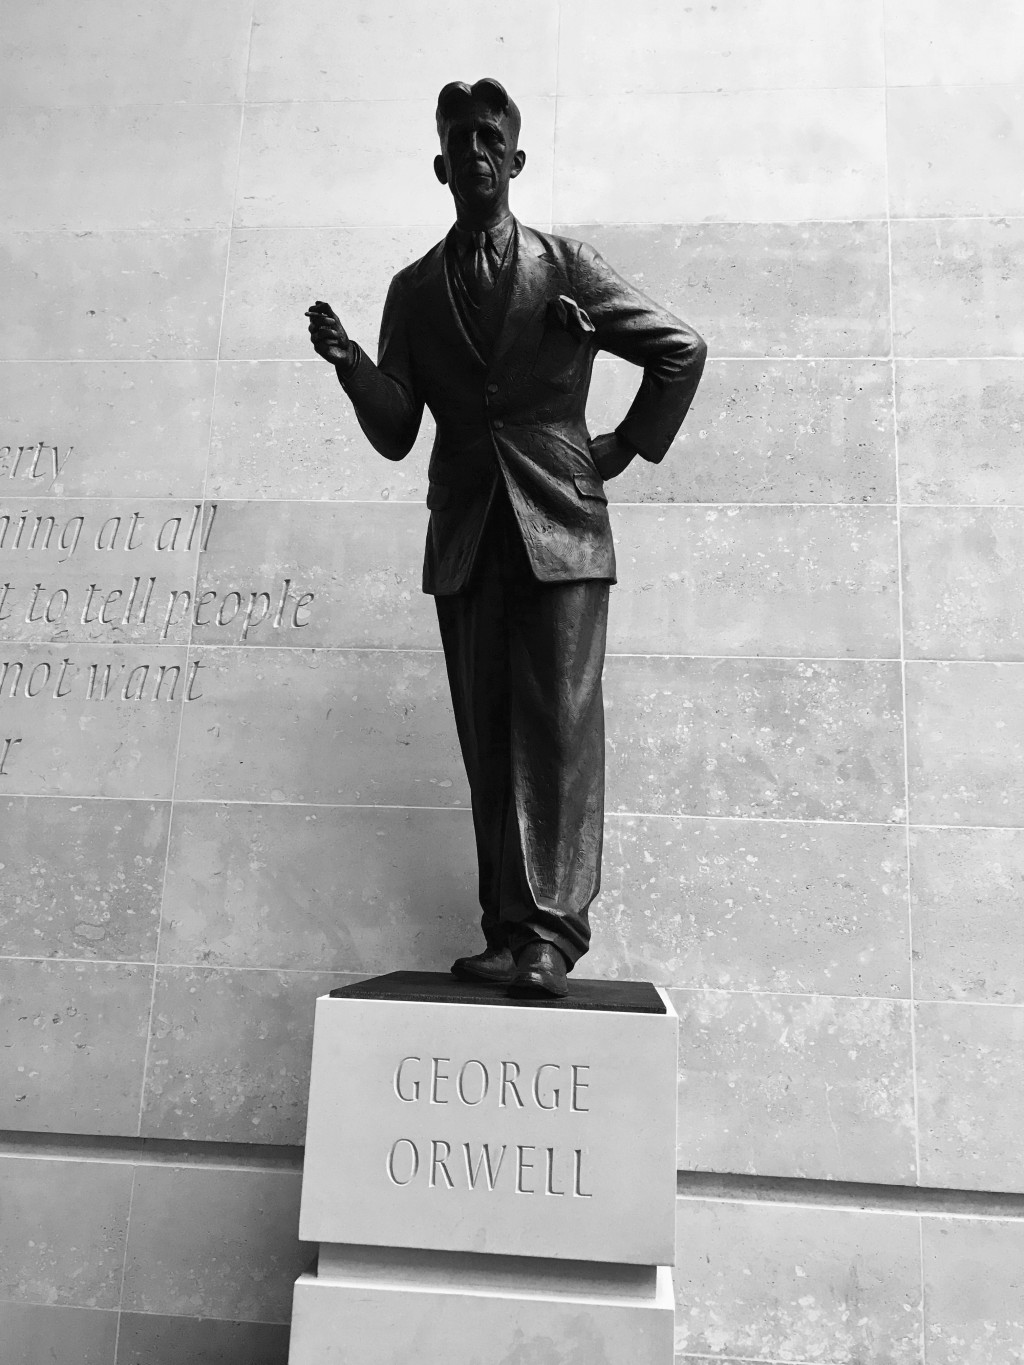 014 Essay Example Down And Out In Paris London George Orwell Statue  Bbc 283856276720229 BreathtakingLarge